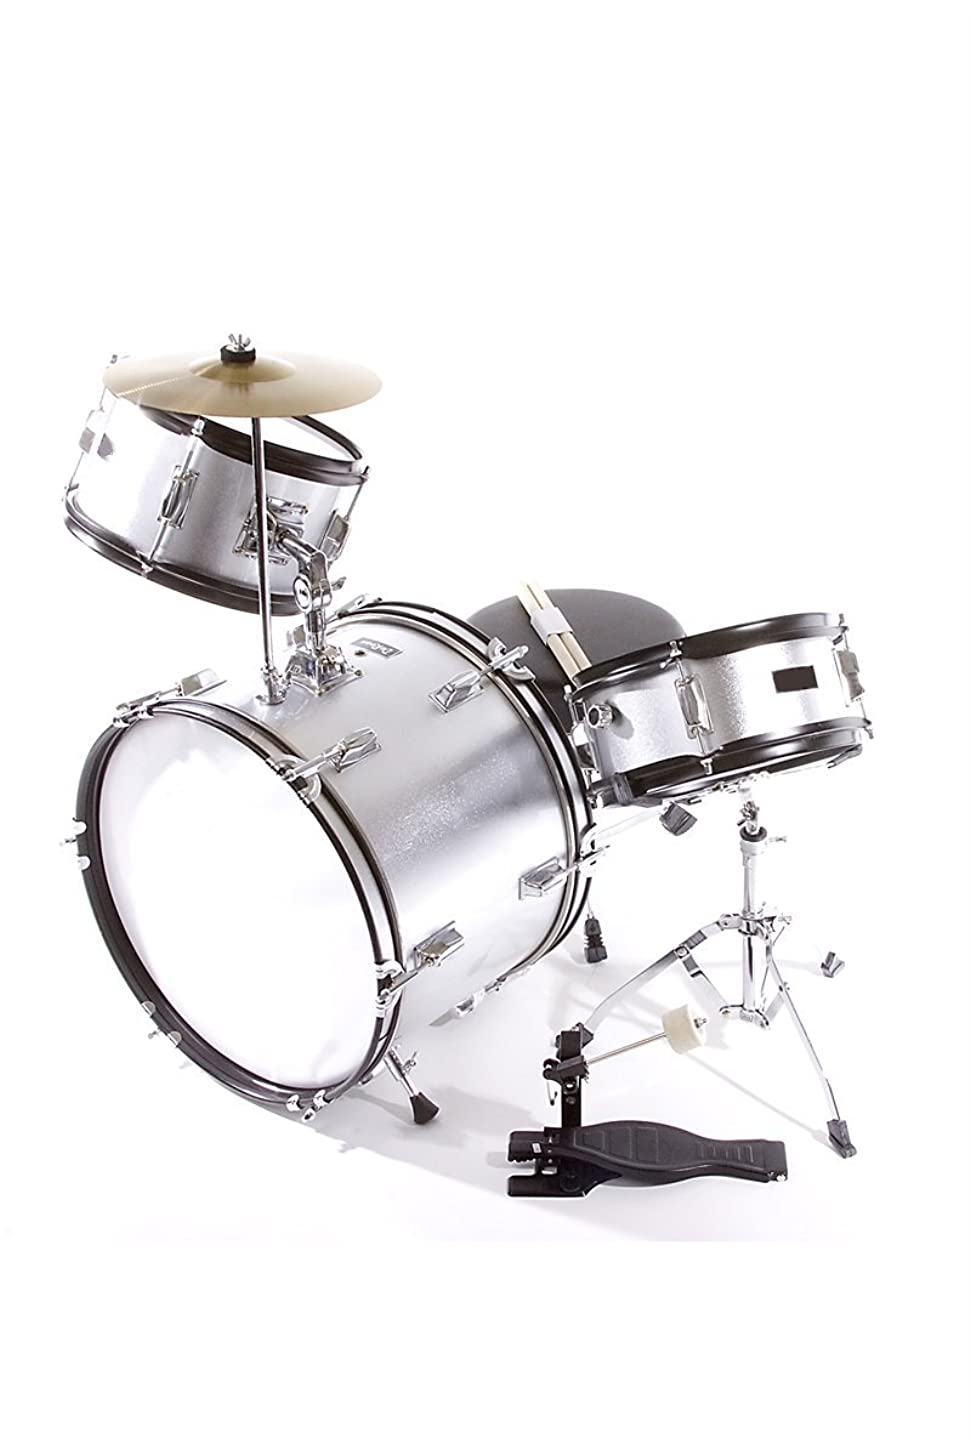 Premium Children's Junior Beginners Silver 3 Piece 16 Inch Drum Set with Chair, Sticks, Stool, Adjustable Tuning Key, Pick + Free Lessons